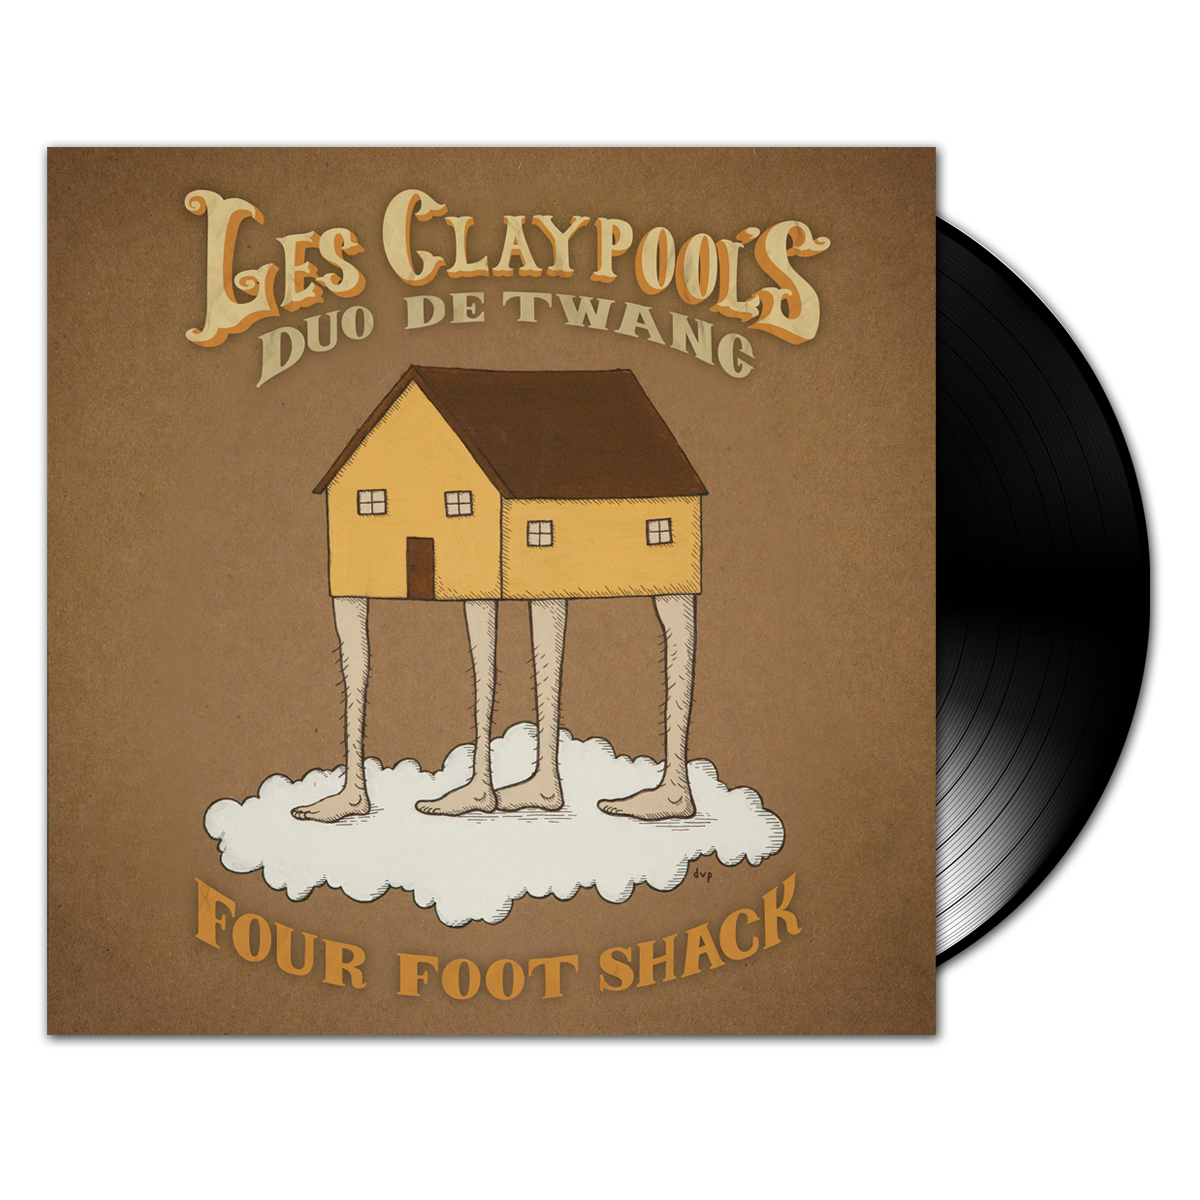 Duo De Twang - Four Foot Shack Vinyl